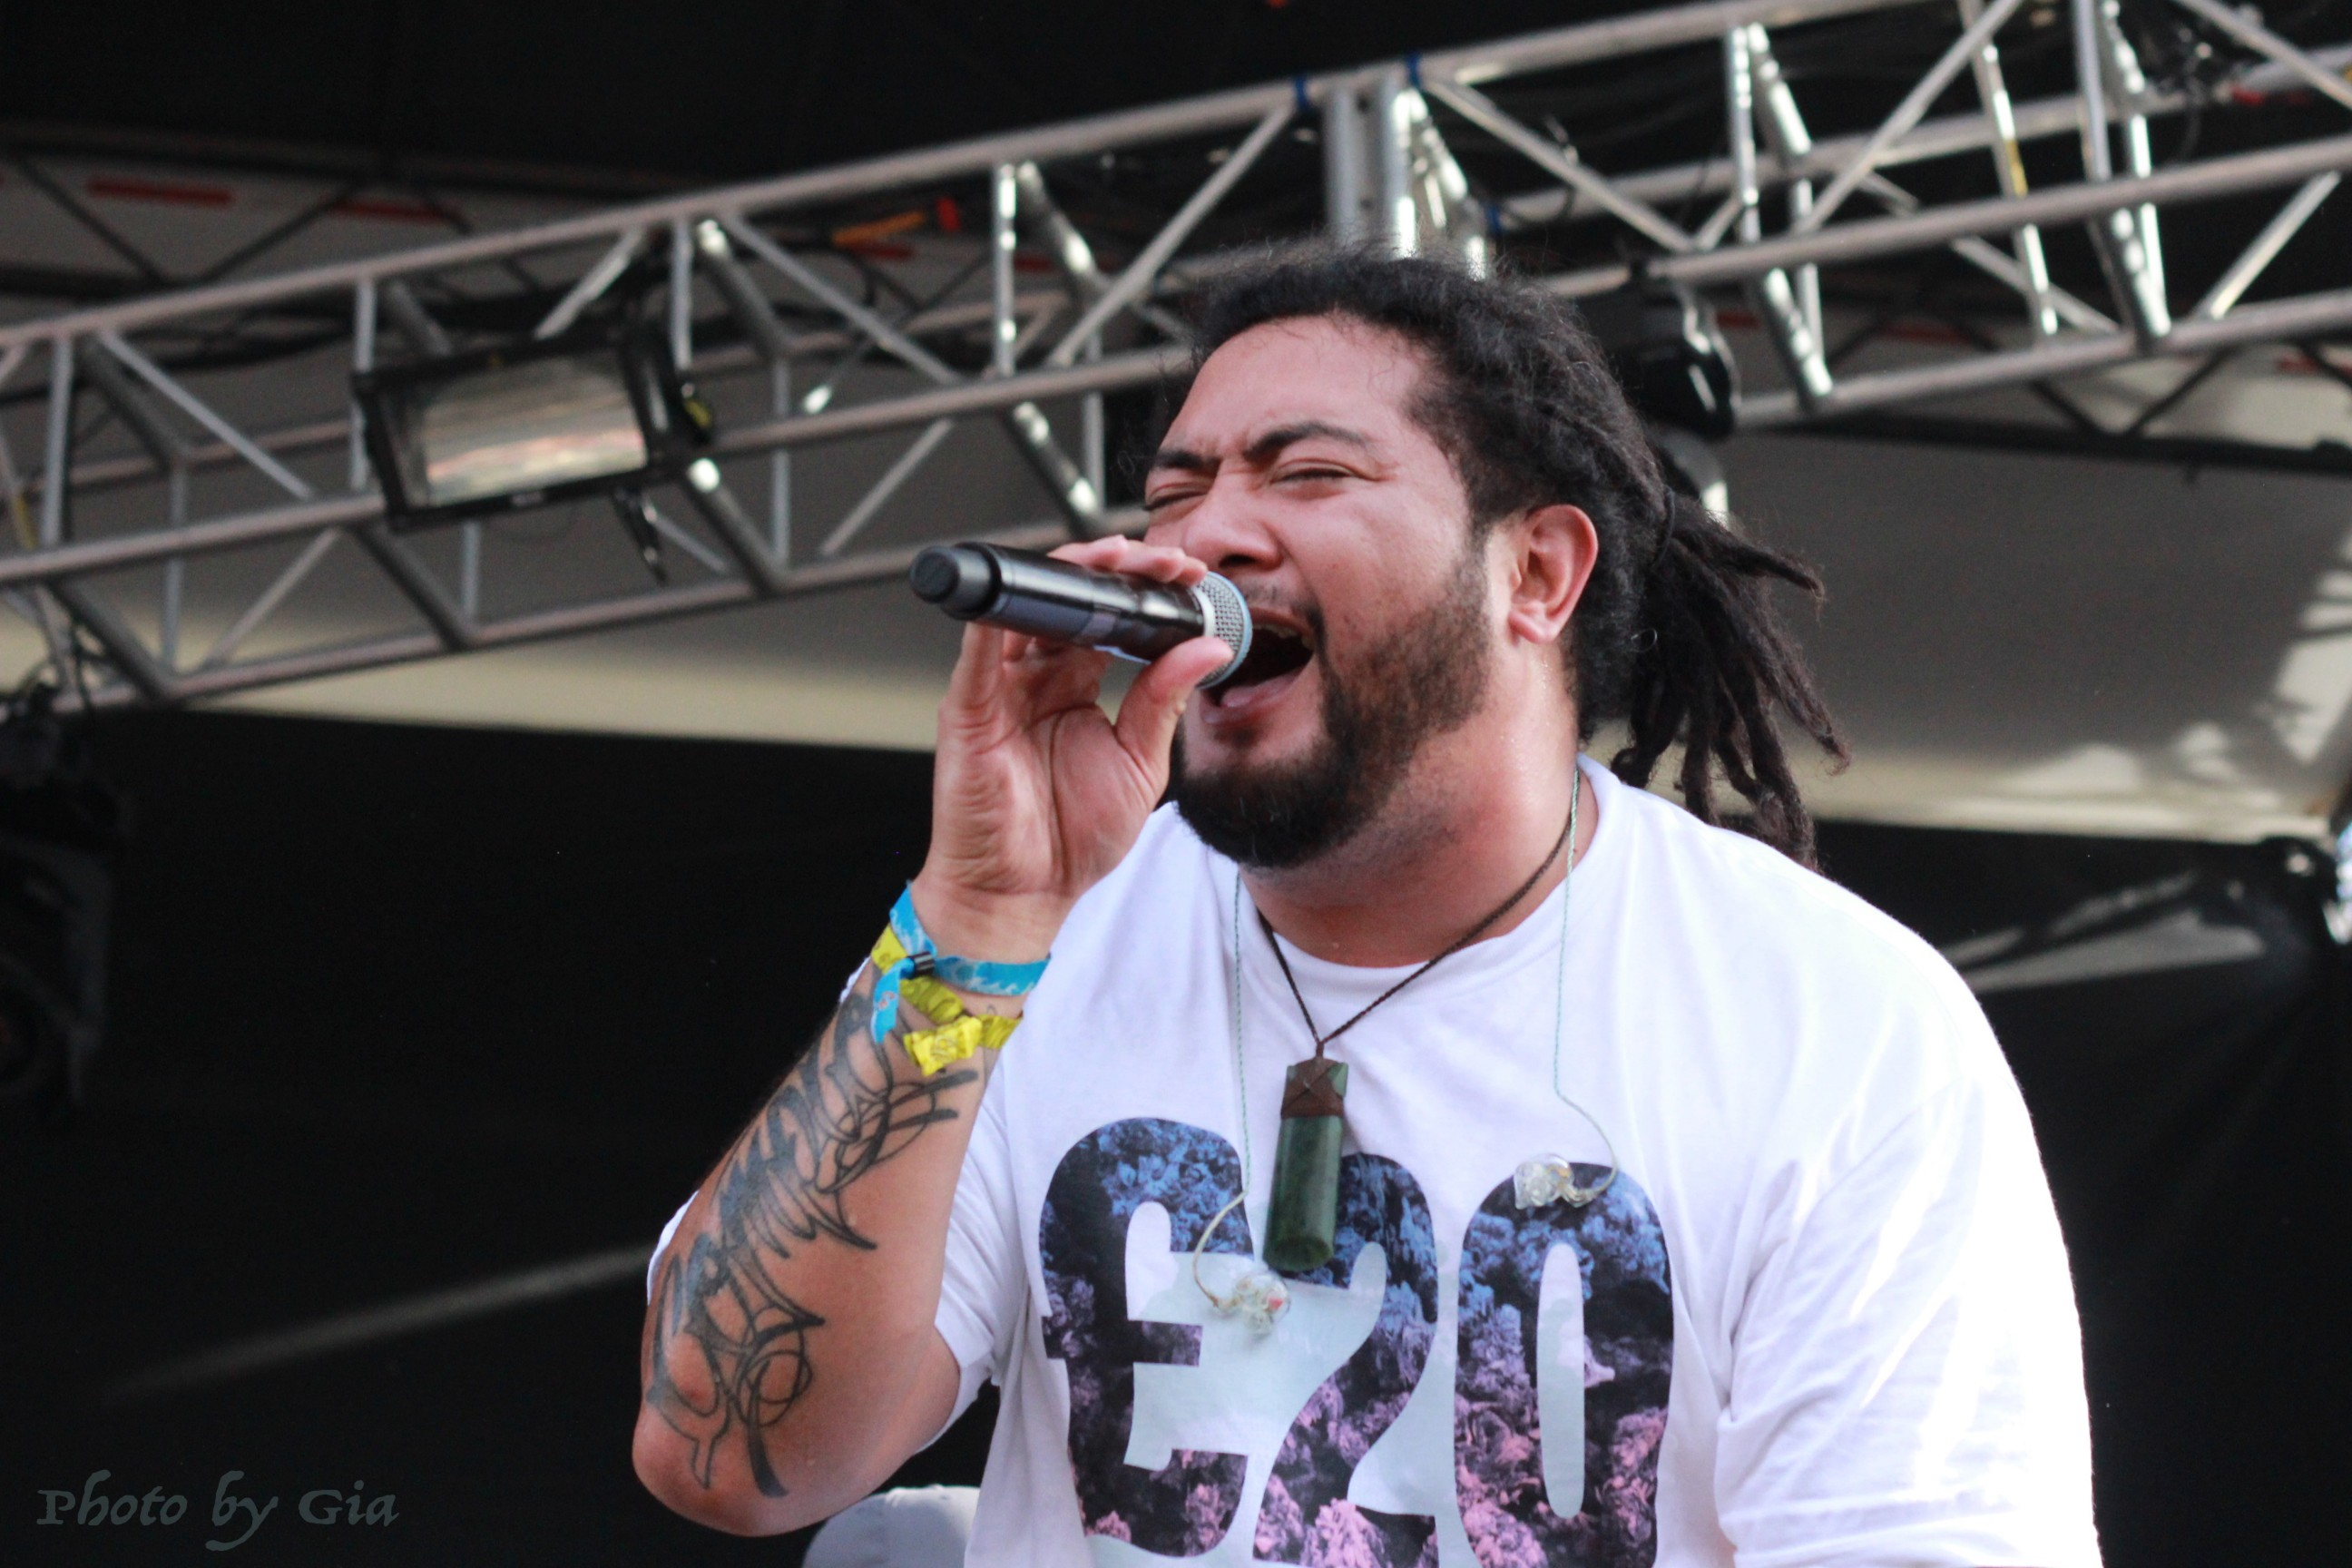 J Boog Is The Second Performer At Avila Beach Concerts In The Cove.